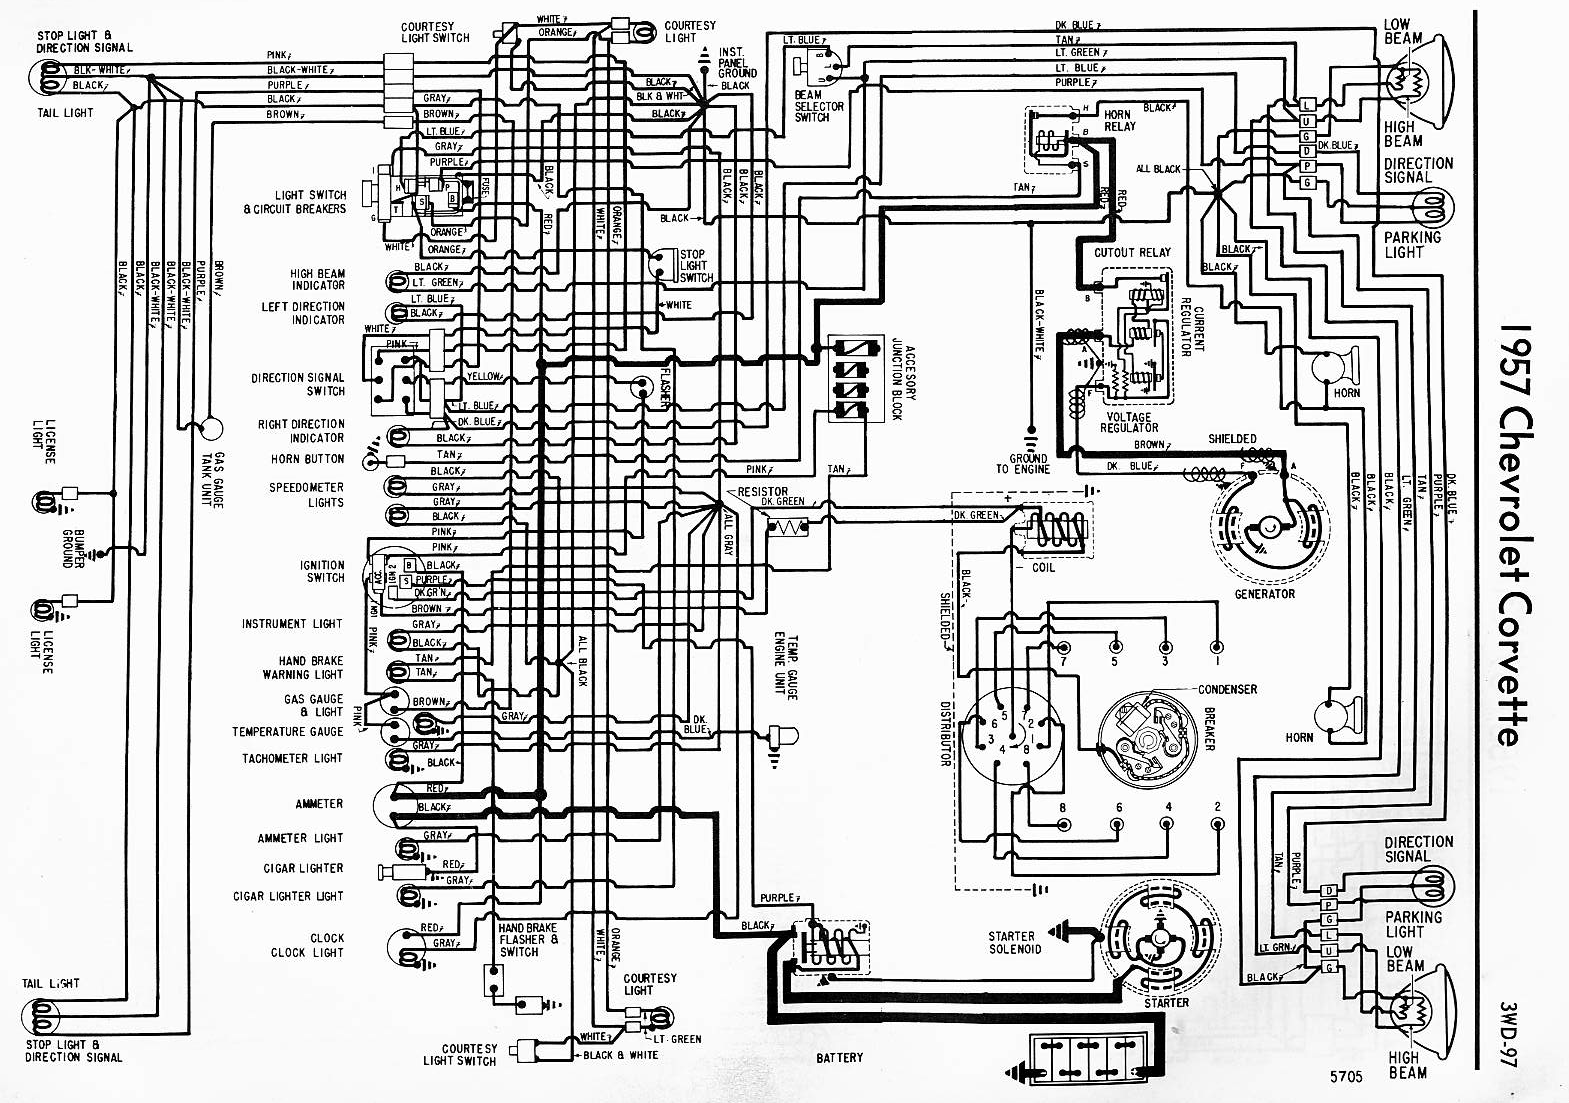 1957 Corvette Wiring Diagram | Willcox Corvette, Inc. on corvette vacuum diagram, corvette fuel system diagram, corvette frame diagram, corvette radiator, corvette parts diagram, corvette electrical diagrams, corvette horn diagram, corvette engine diagram, corvette transmission diagram, corvette horn wiring, corvette drivetrain diagram, 1974 corvette fuse box diagram, corvette starter wiring, corvette car diagram, lighting diagram, corvette cover, corvette schematics diagrams, corvette alternator wiring, corvette drive shaft, corvette fuse panel diagram,